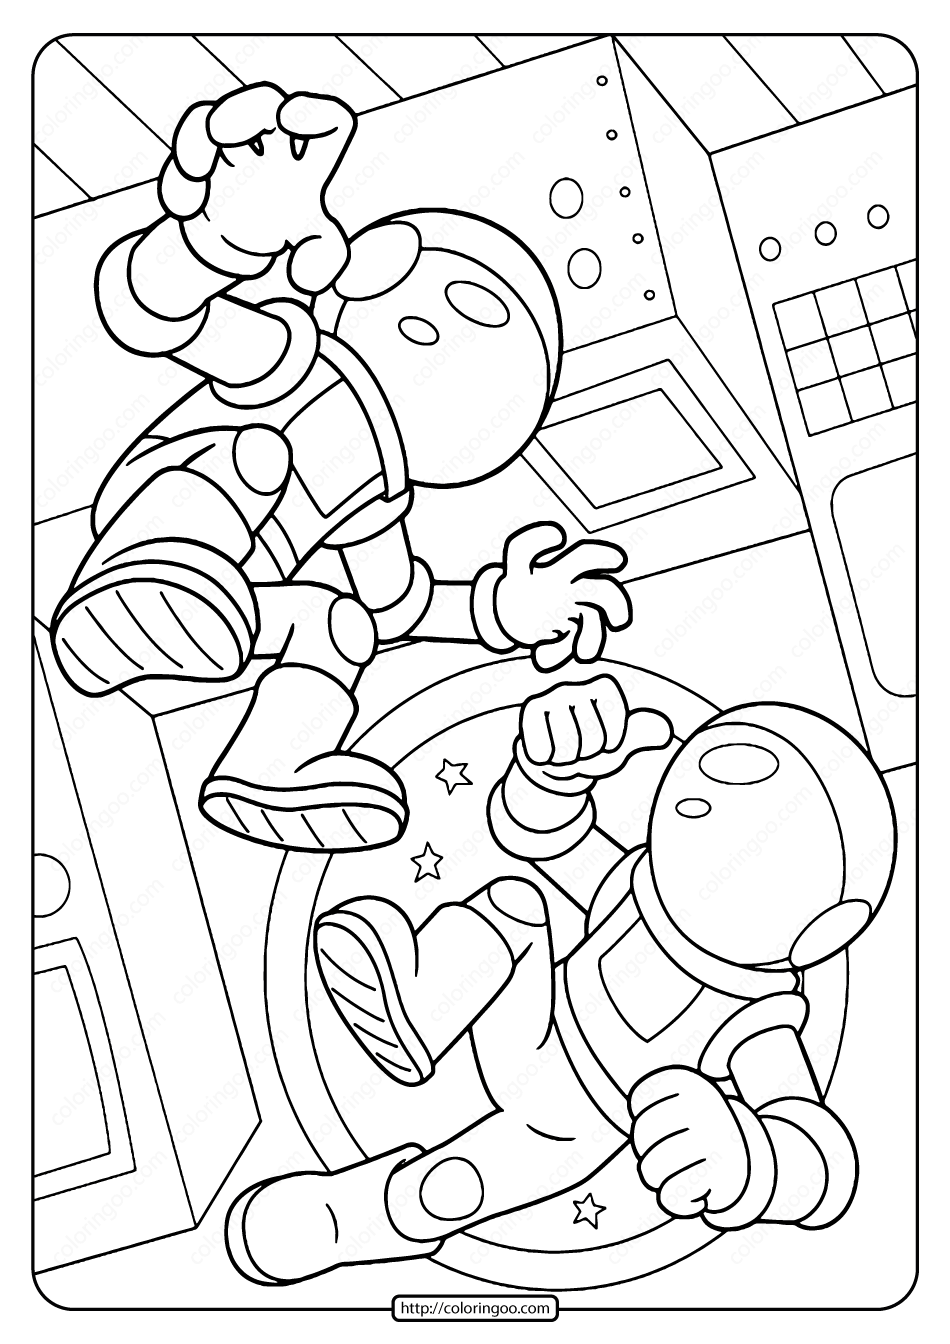 astronomy coloring pages free coloring pages printable pictures to color kids astronomy pages coloring